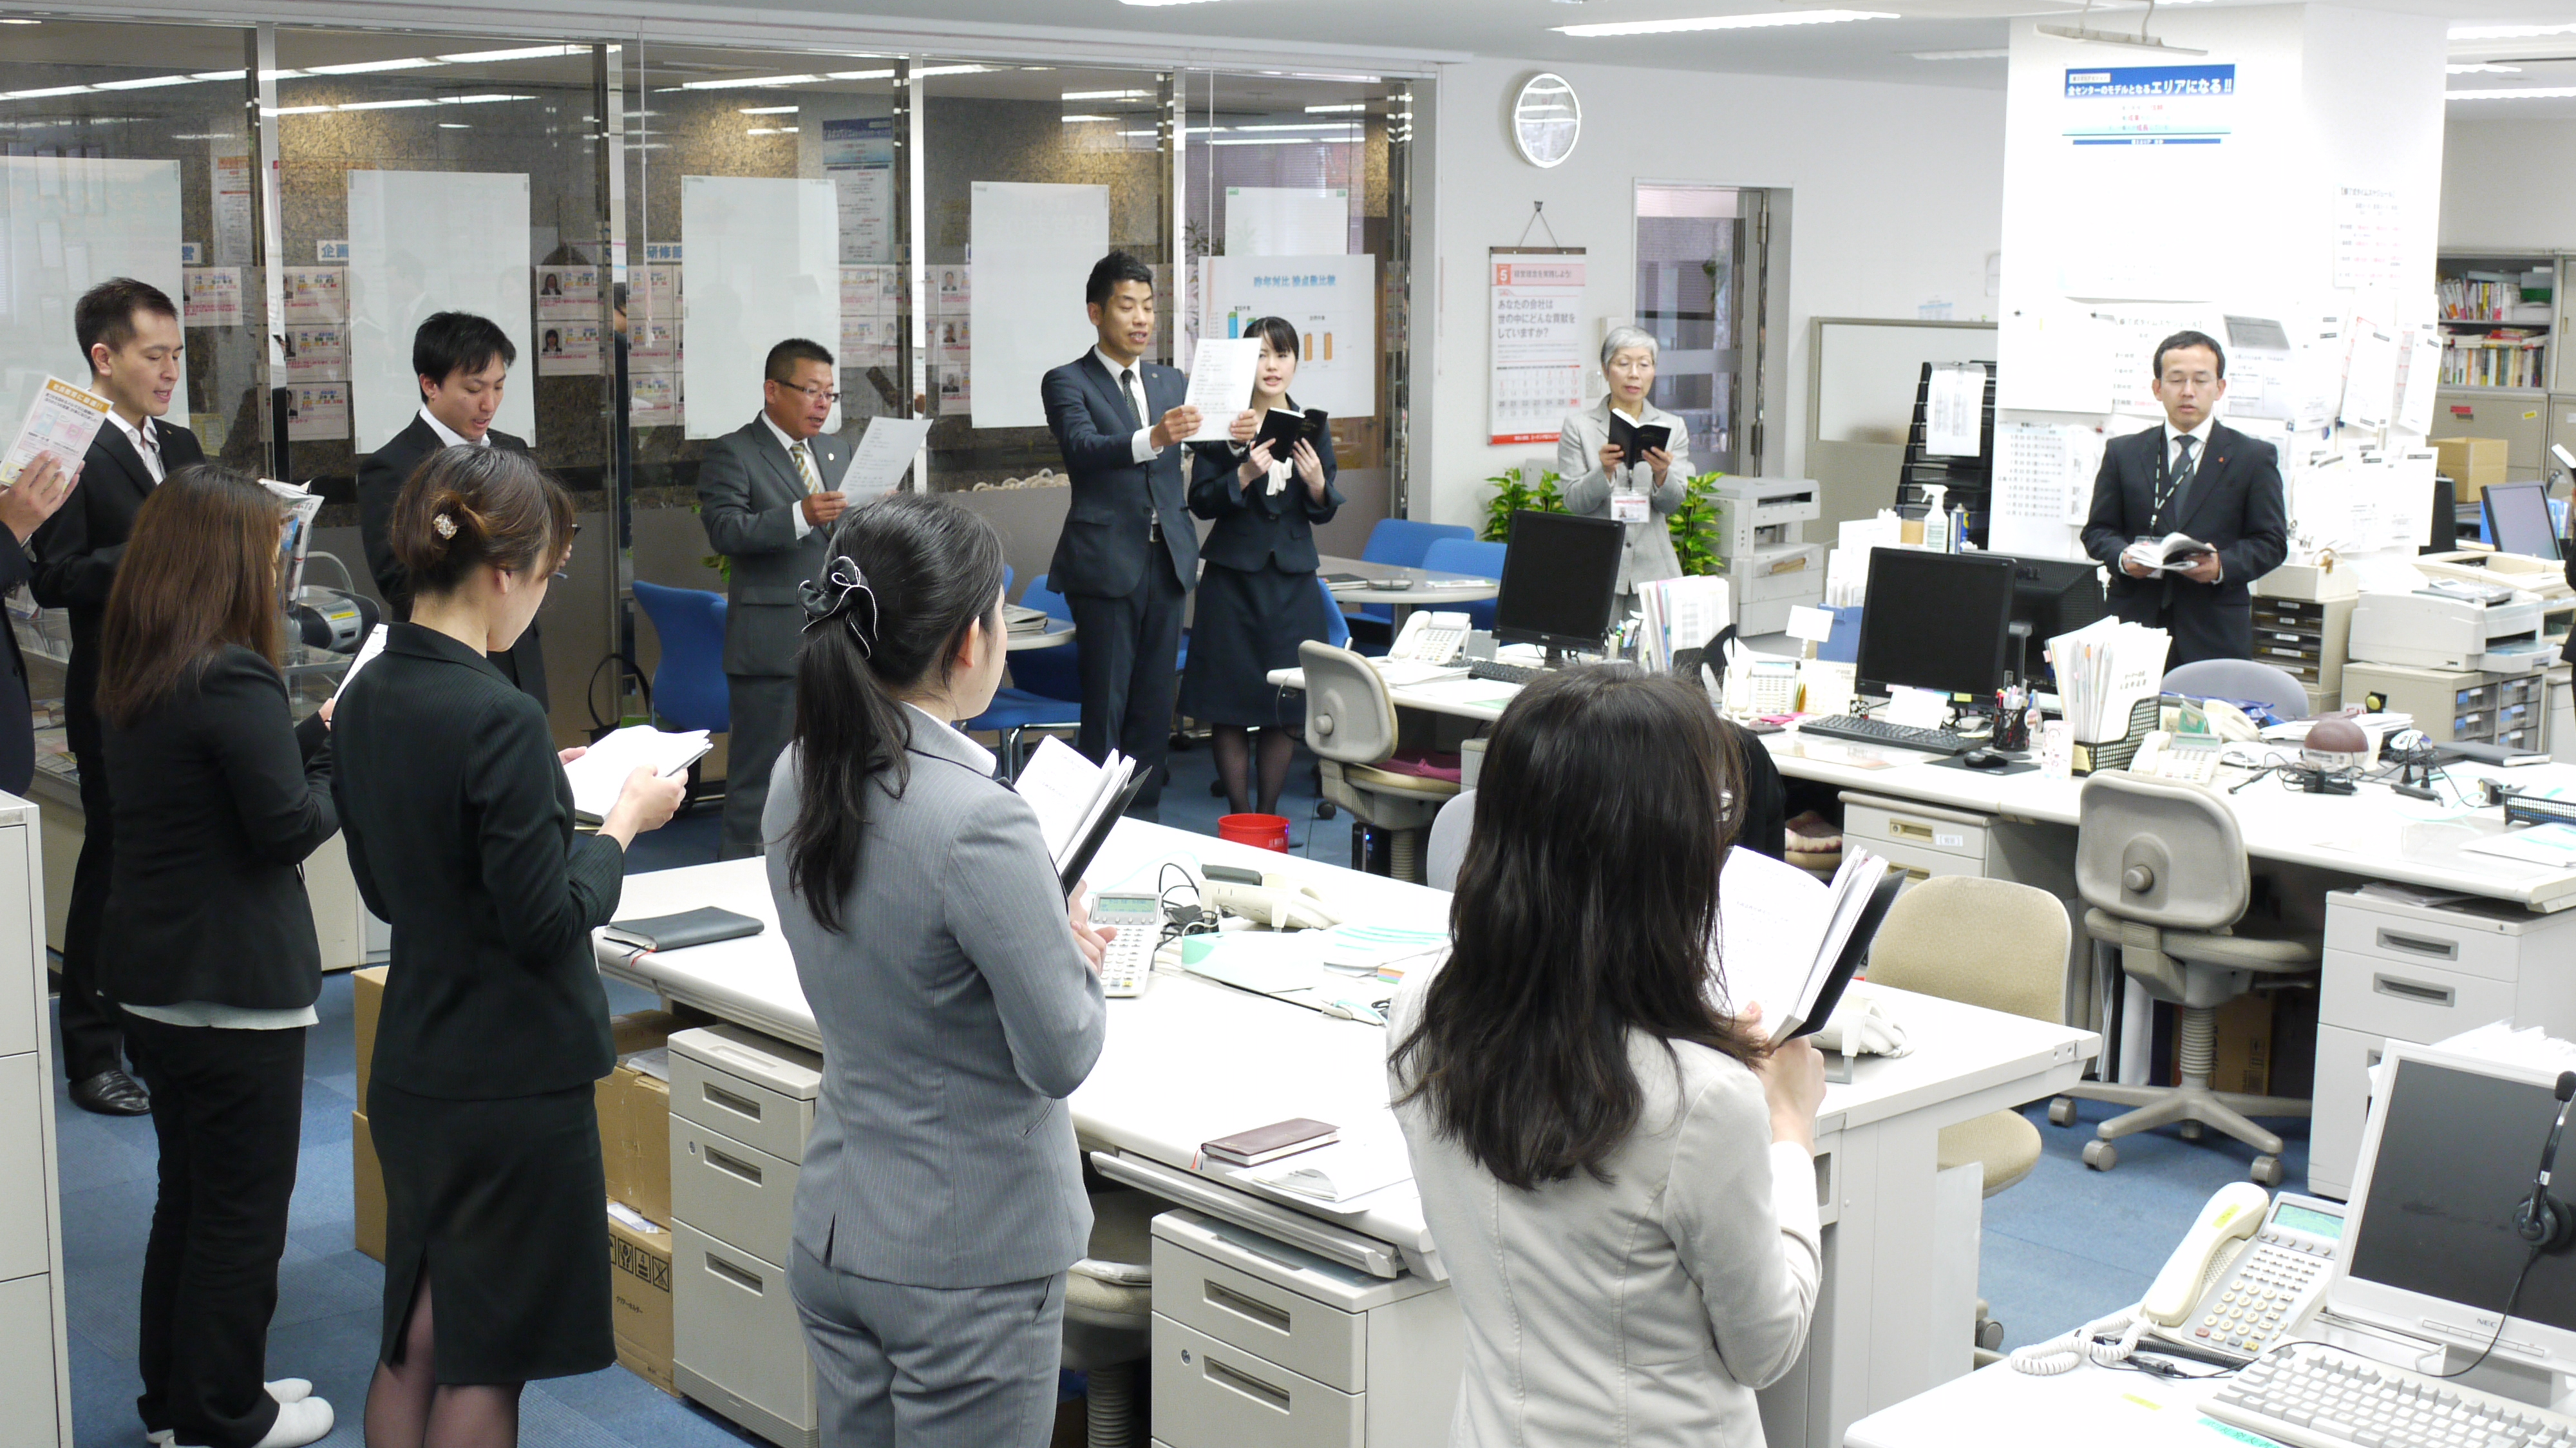 The morning greetings in japanese work place twice i got the opportunity to work in a japanese open space and to discover its traditions i was particularly strucked by the ceremonial still surviving m4hsunfo